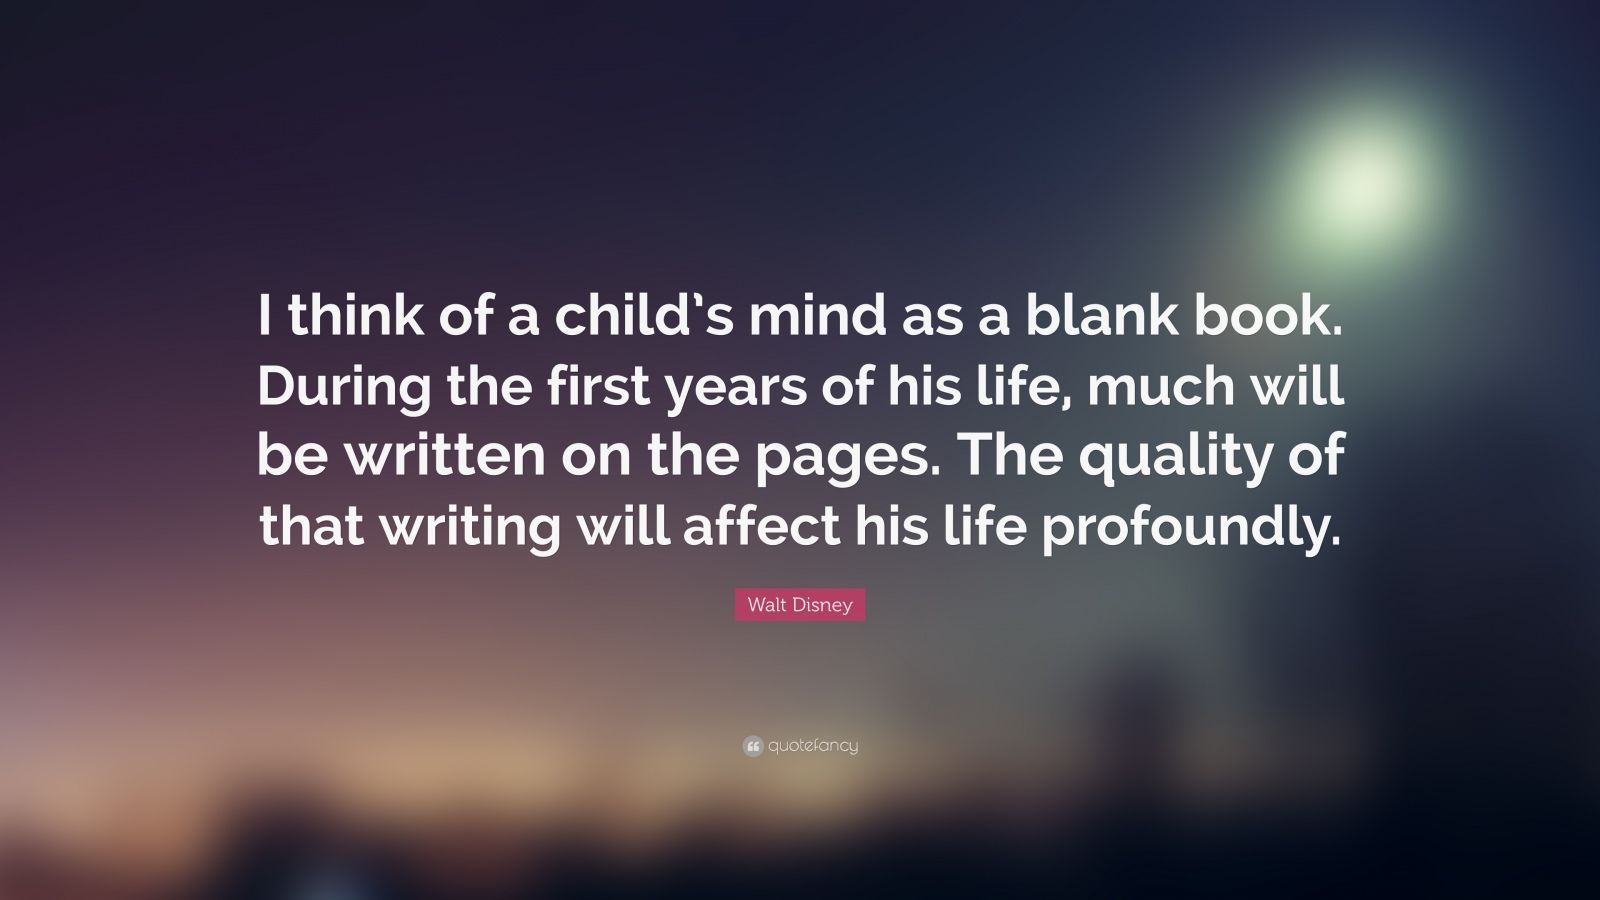 """Walt Disney Quote: """"I think of a child's mind as a blank book. During the first years of his life, much will be written on the pages. The quality of that writing will affect his life profoundly."""""""